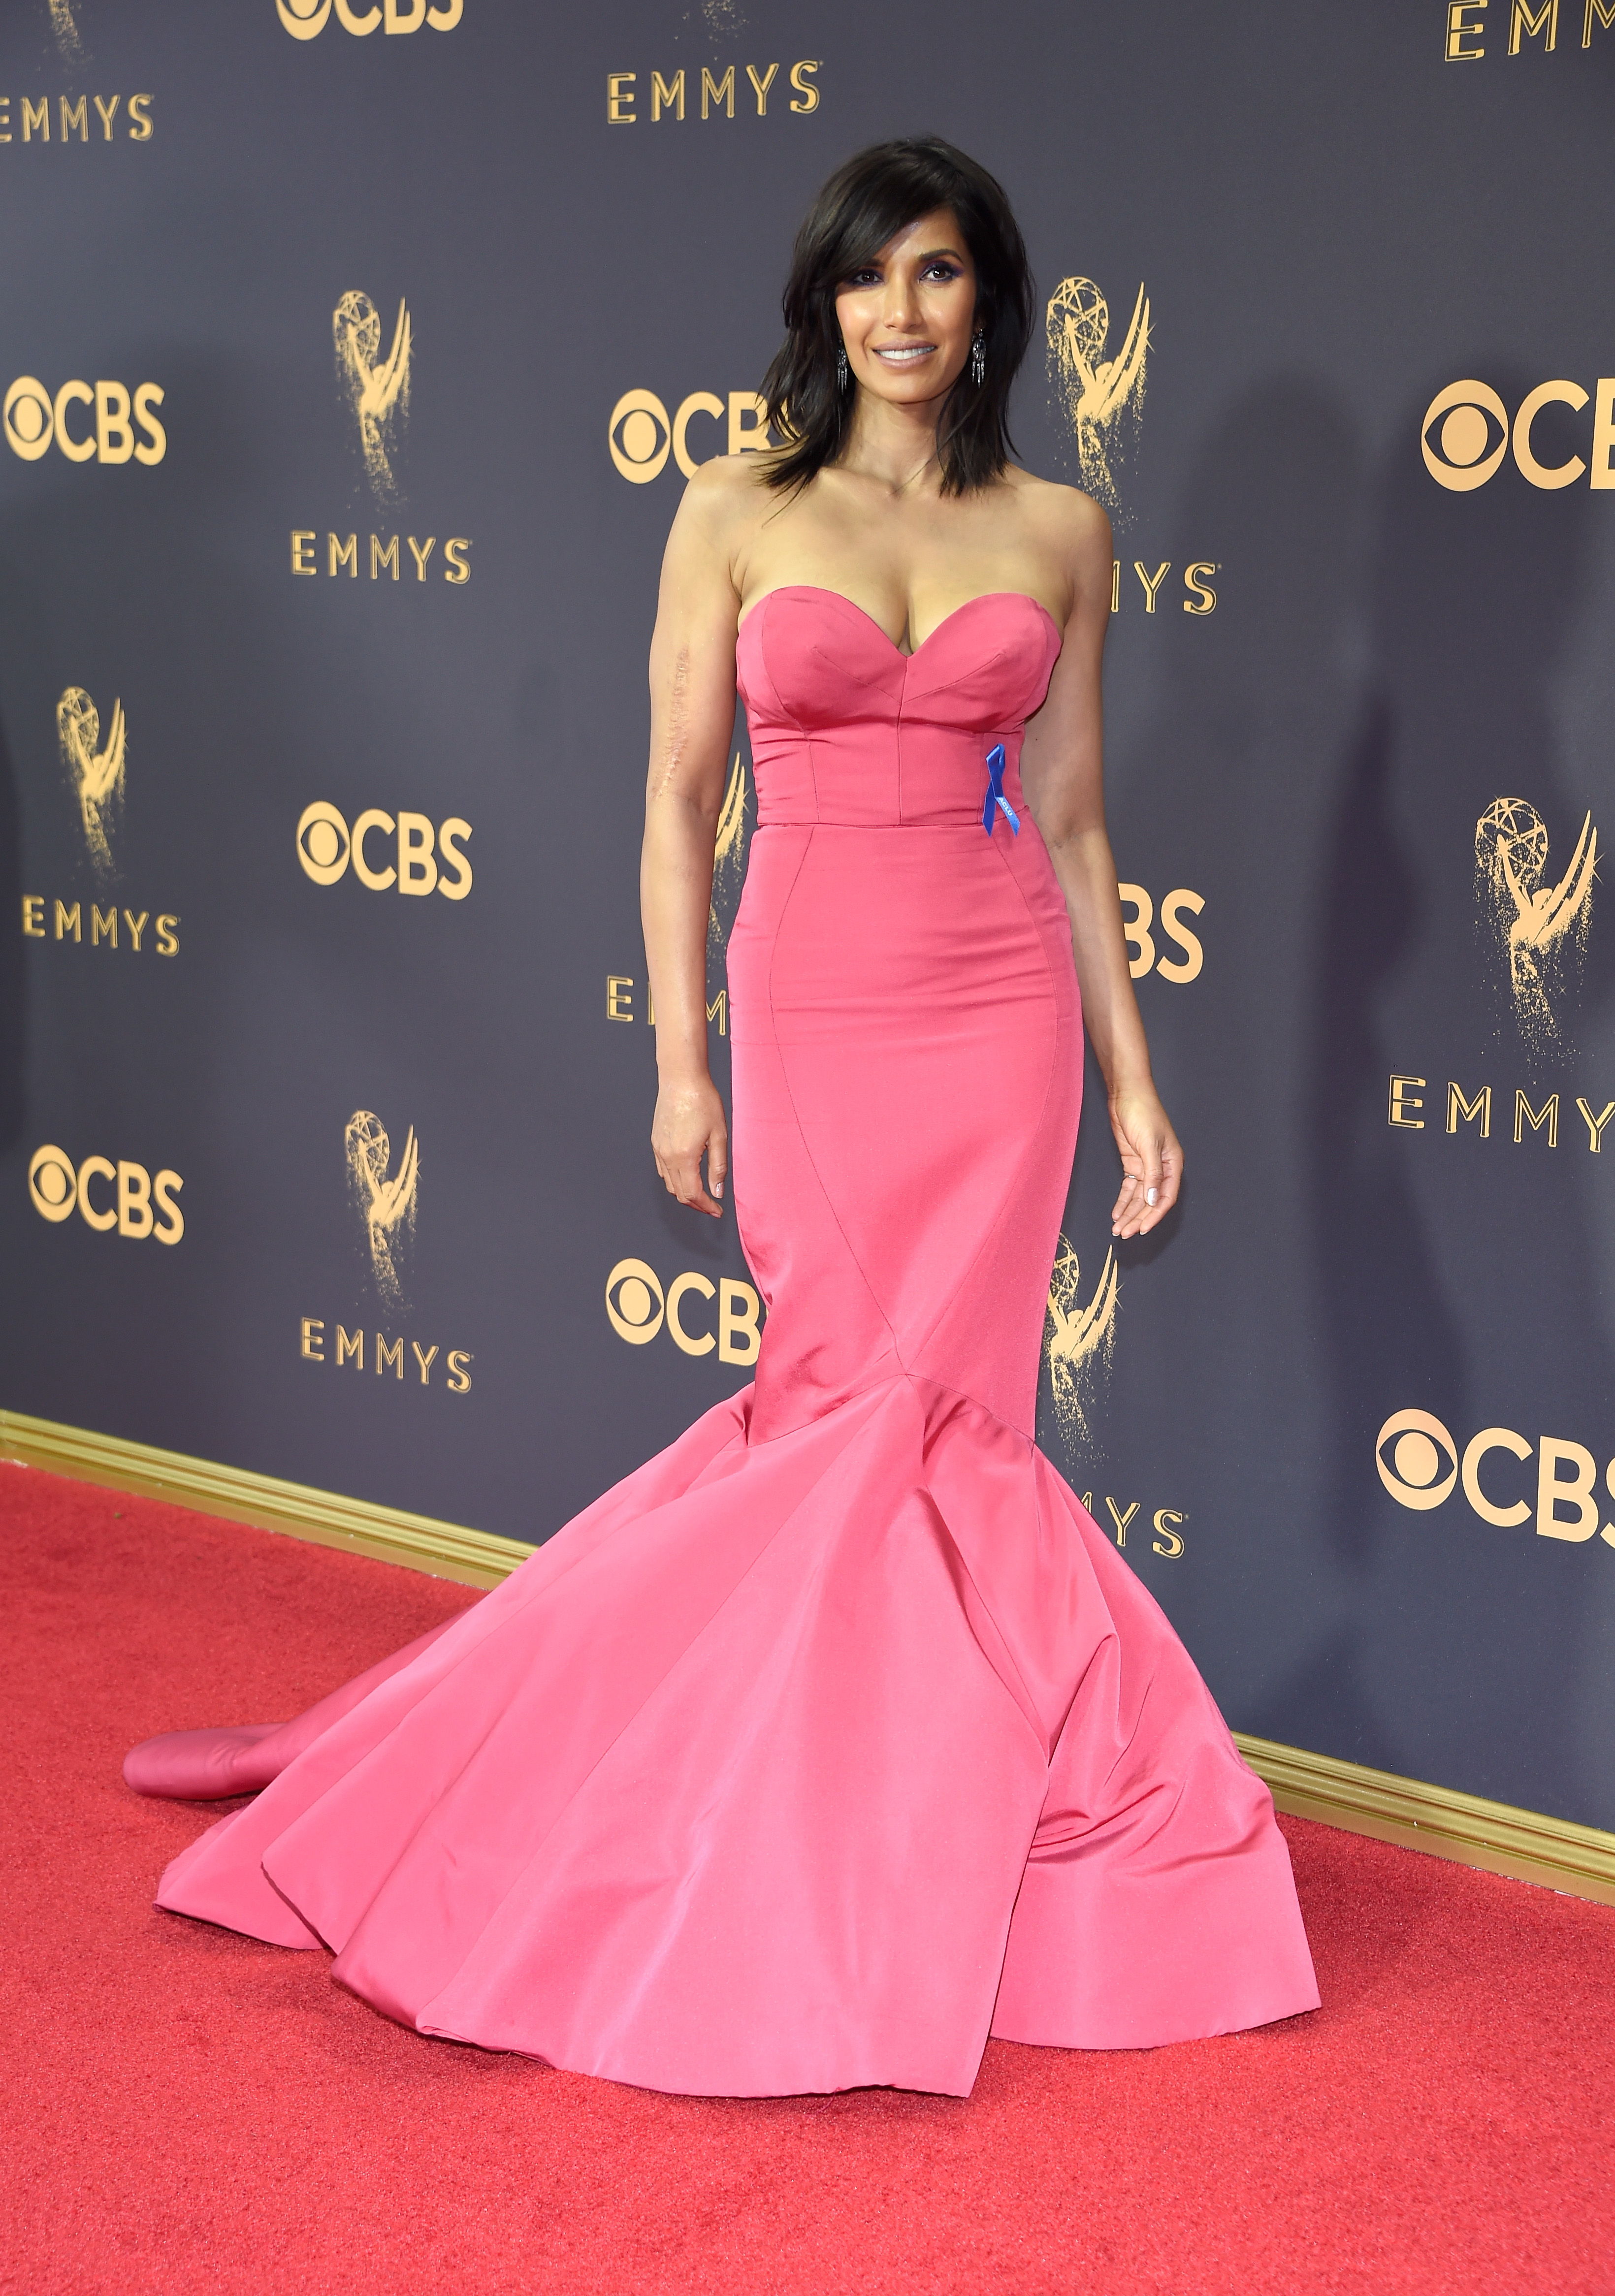 Padma Lakshmi  attends the 69th Annual Primetime Emmy Awards at Microsoft Theater on Sept. 17, 2017 in Los Angeles.